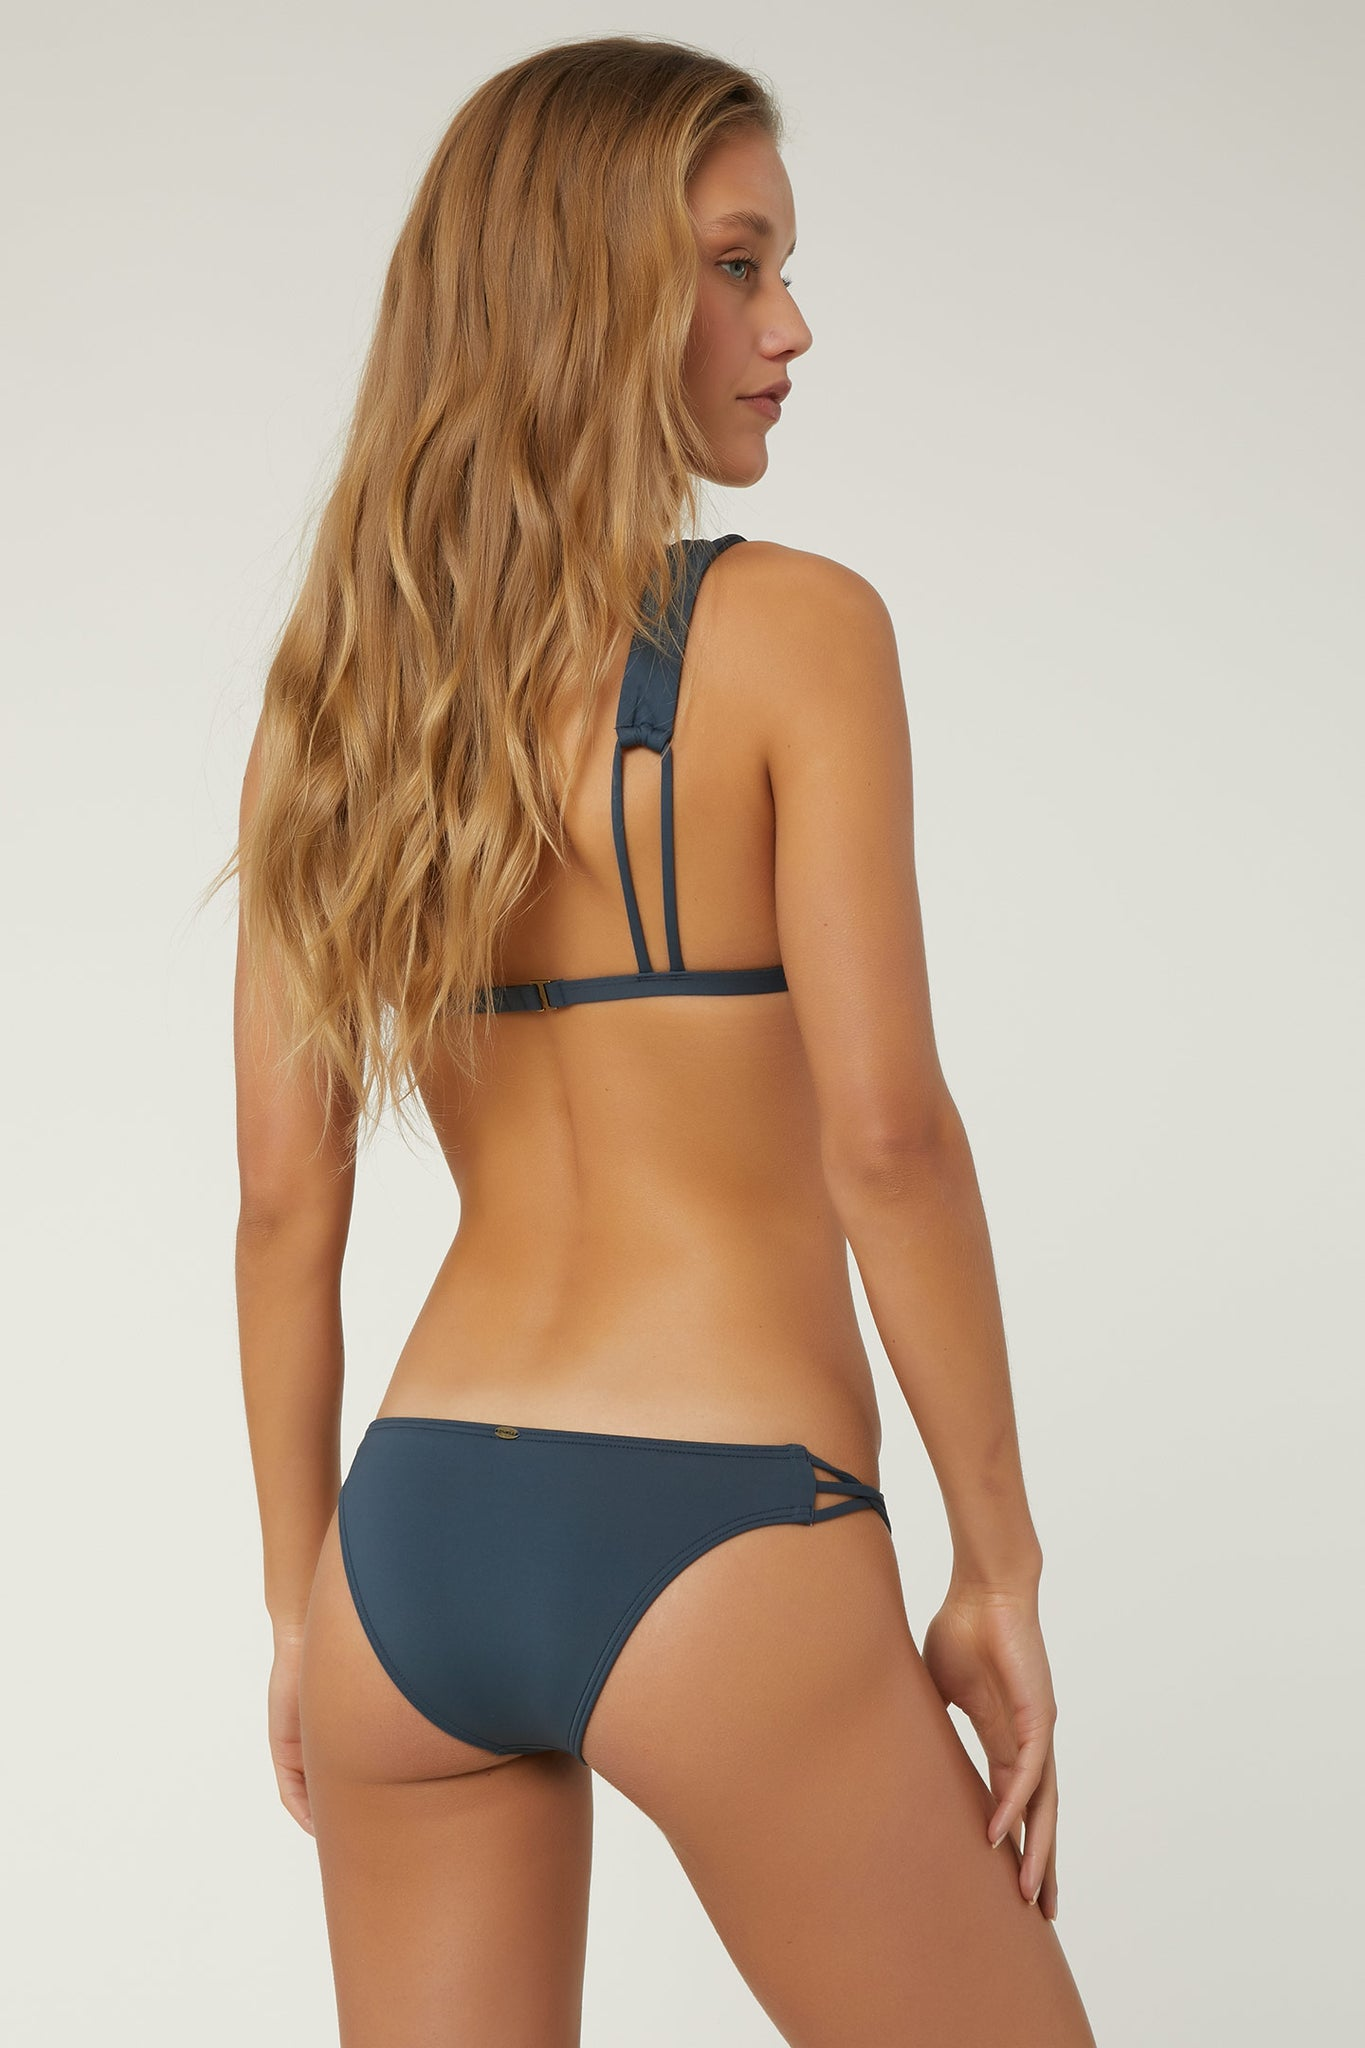 Saltwater Solids Multi Strap Bottoms | O'Neill Clothing USA